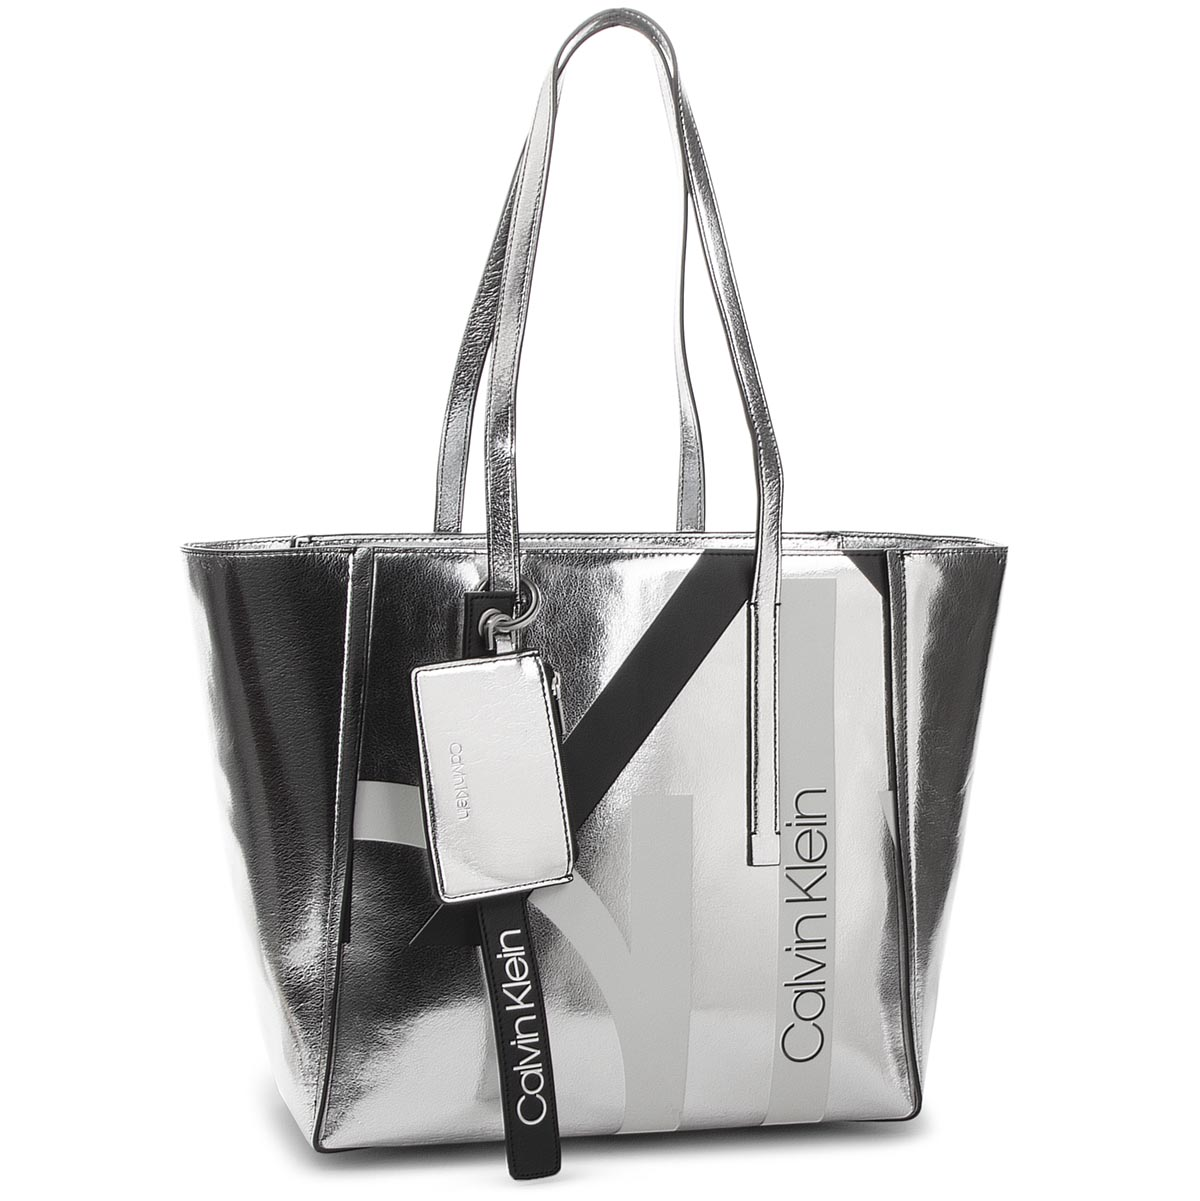 Geantă CALVIN KLEIN - Ck Base Medium Shopper Print K60K604667 904